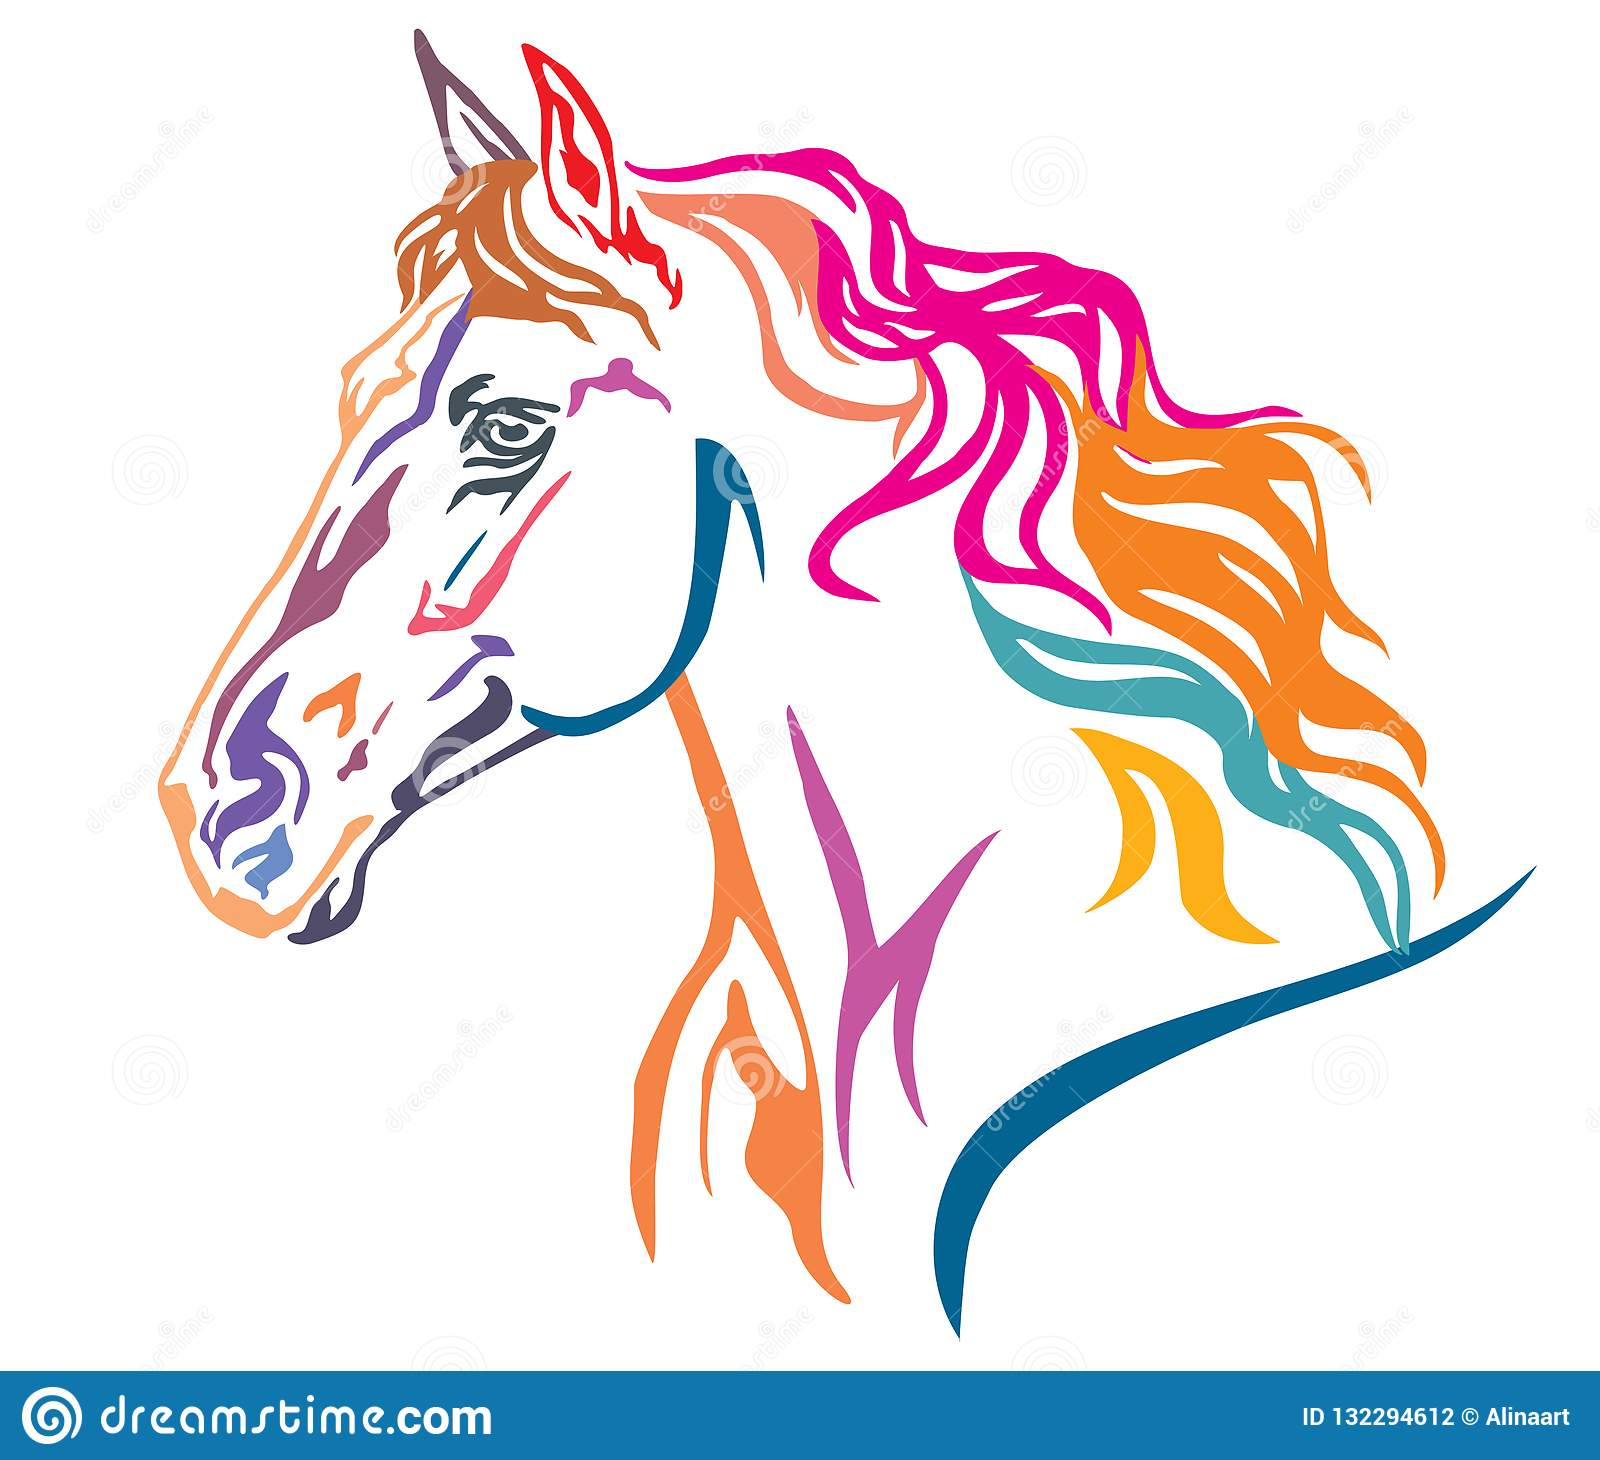 Colorful Horse Stock Illustrations 22 535 Colorful Horse Stock Illustrations Vectors Clipart Dreamstime